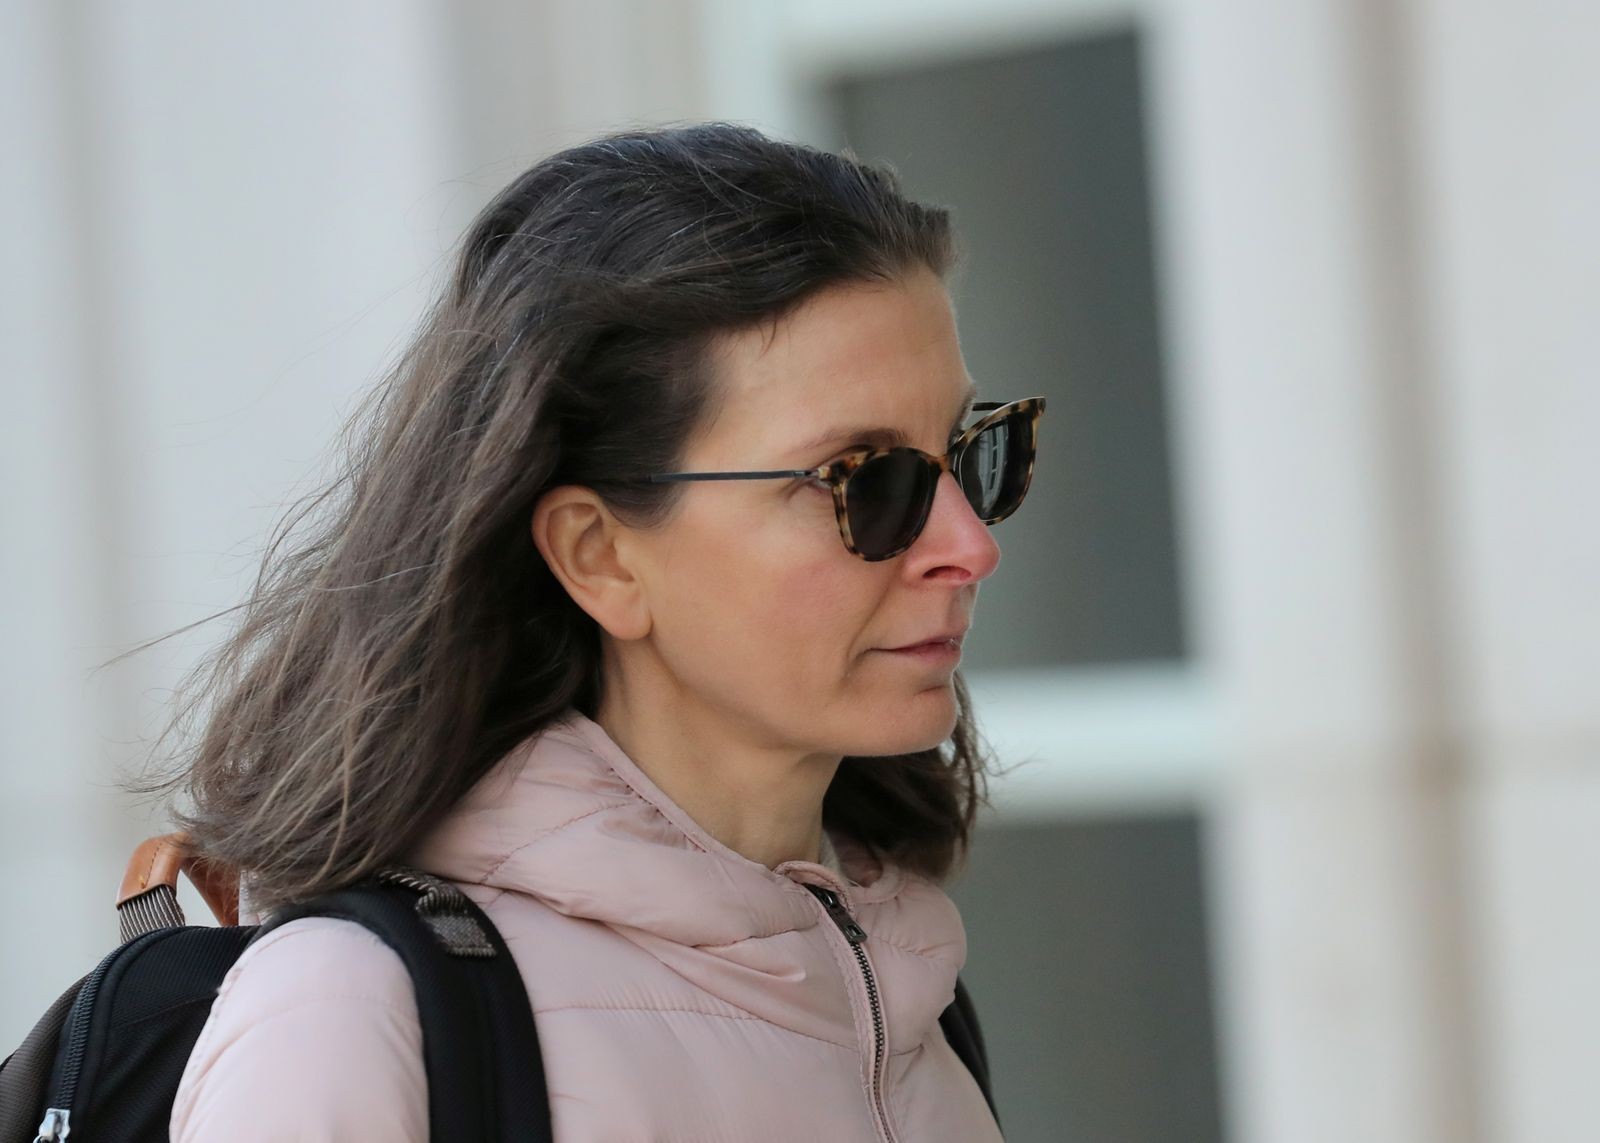 FILE PHOTO: Clare Bronfman, an heiress of the Seagram's liquor empire, arrives at the Brooklyn Federal Courthouse, for her trail regarding sex trafficking and racketeering related to the Nxivm cult in the Brooklyn borough of New York